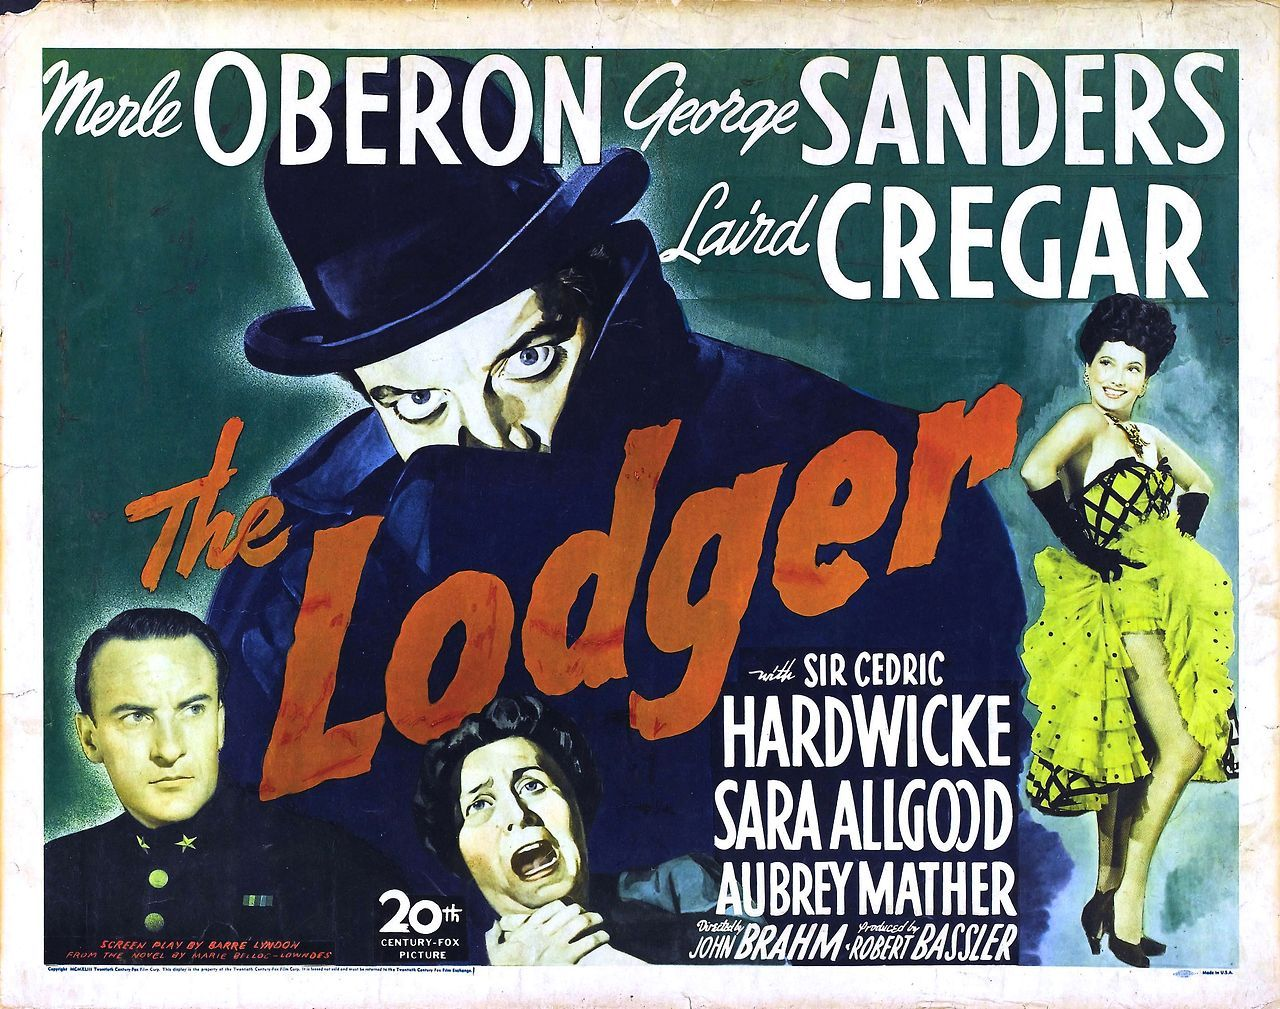 George Sanders, Laird Cregar, and Merle Oberon in The Lodger (1944)